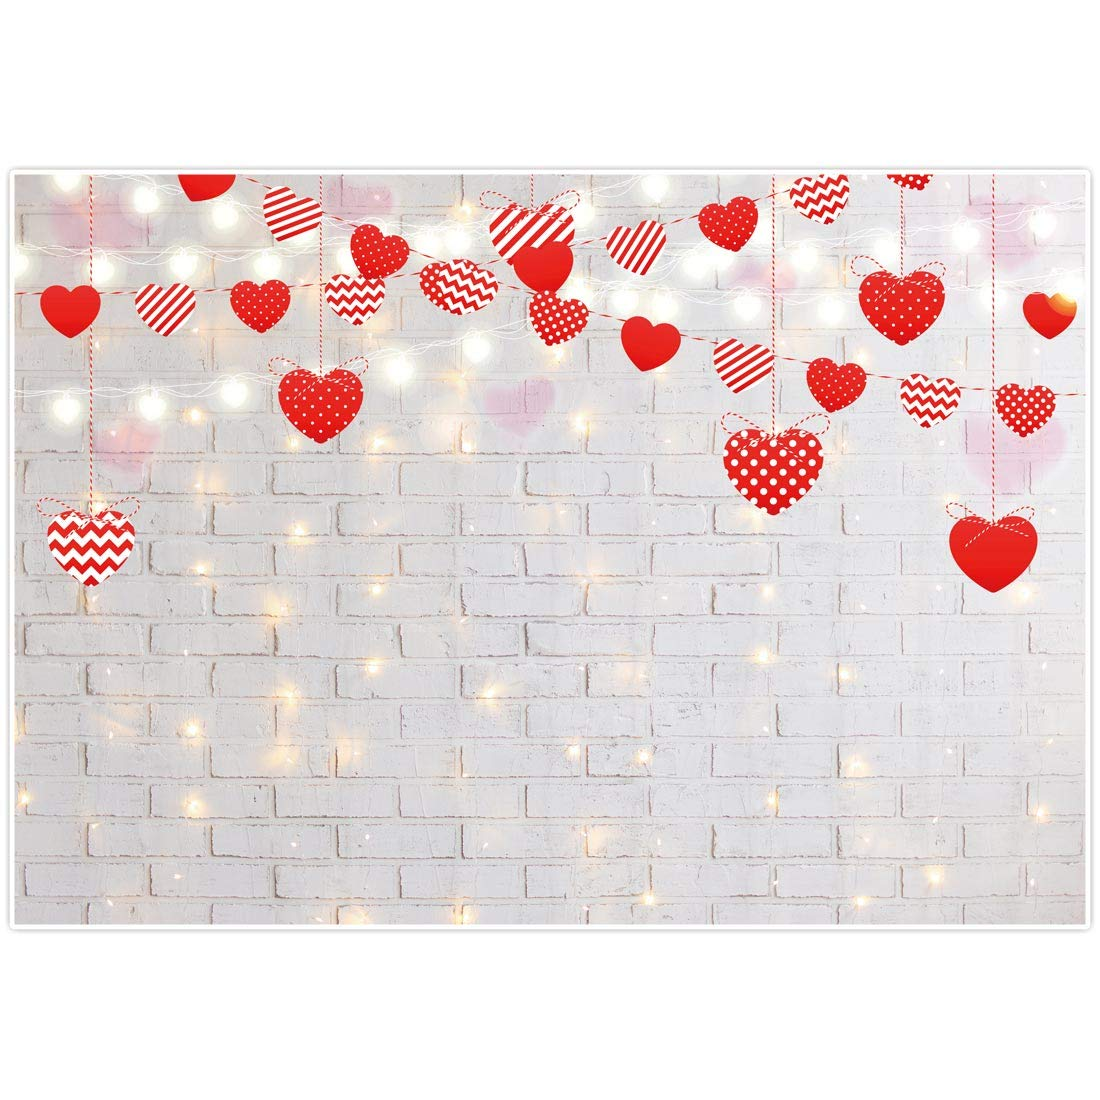 VINFUTUR 6pcs /× 6.6ft Paper Love Heart String Garlands Heart Banner Bunting Backdrop Hanging Decorations for Valentines Day Engagement Wedding Birthday Party Holiday Home Decorations Pink